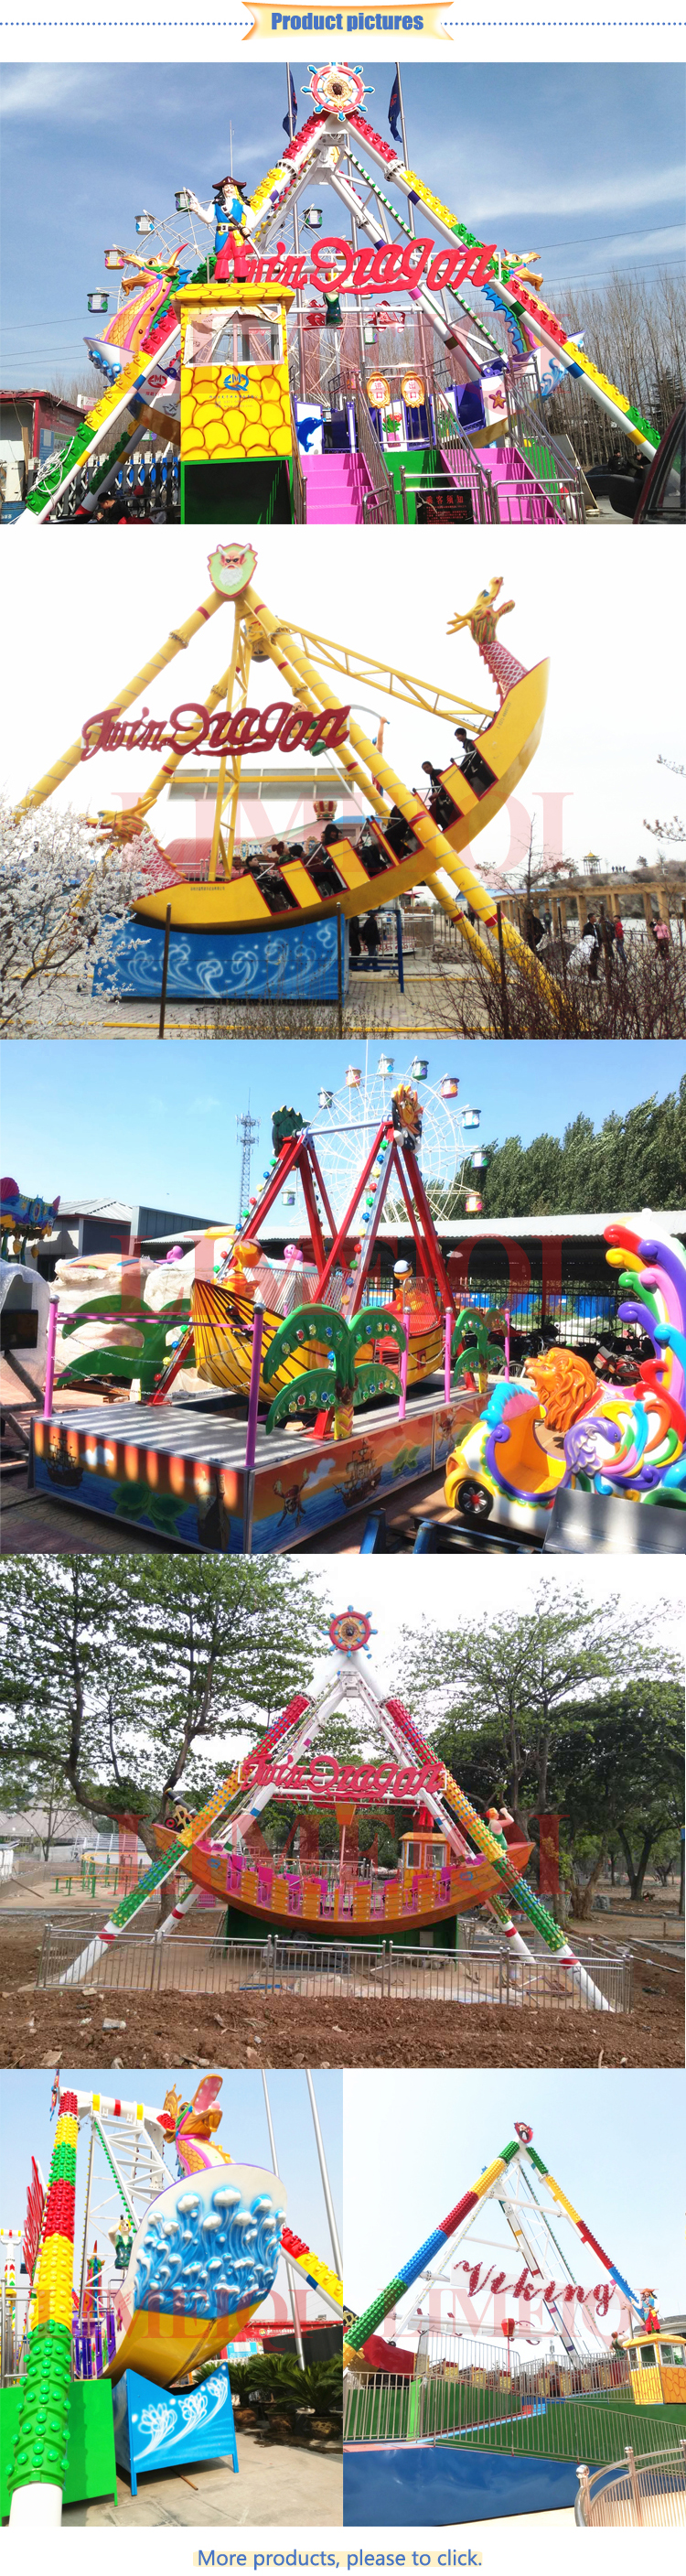 Factory Price Funfair Carnival Theme Attraction Amusement Park Rides Equipment Swing Big Pirate Ship Ride For Sale